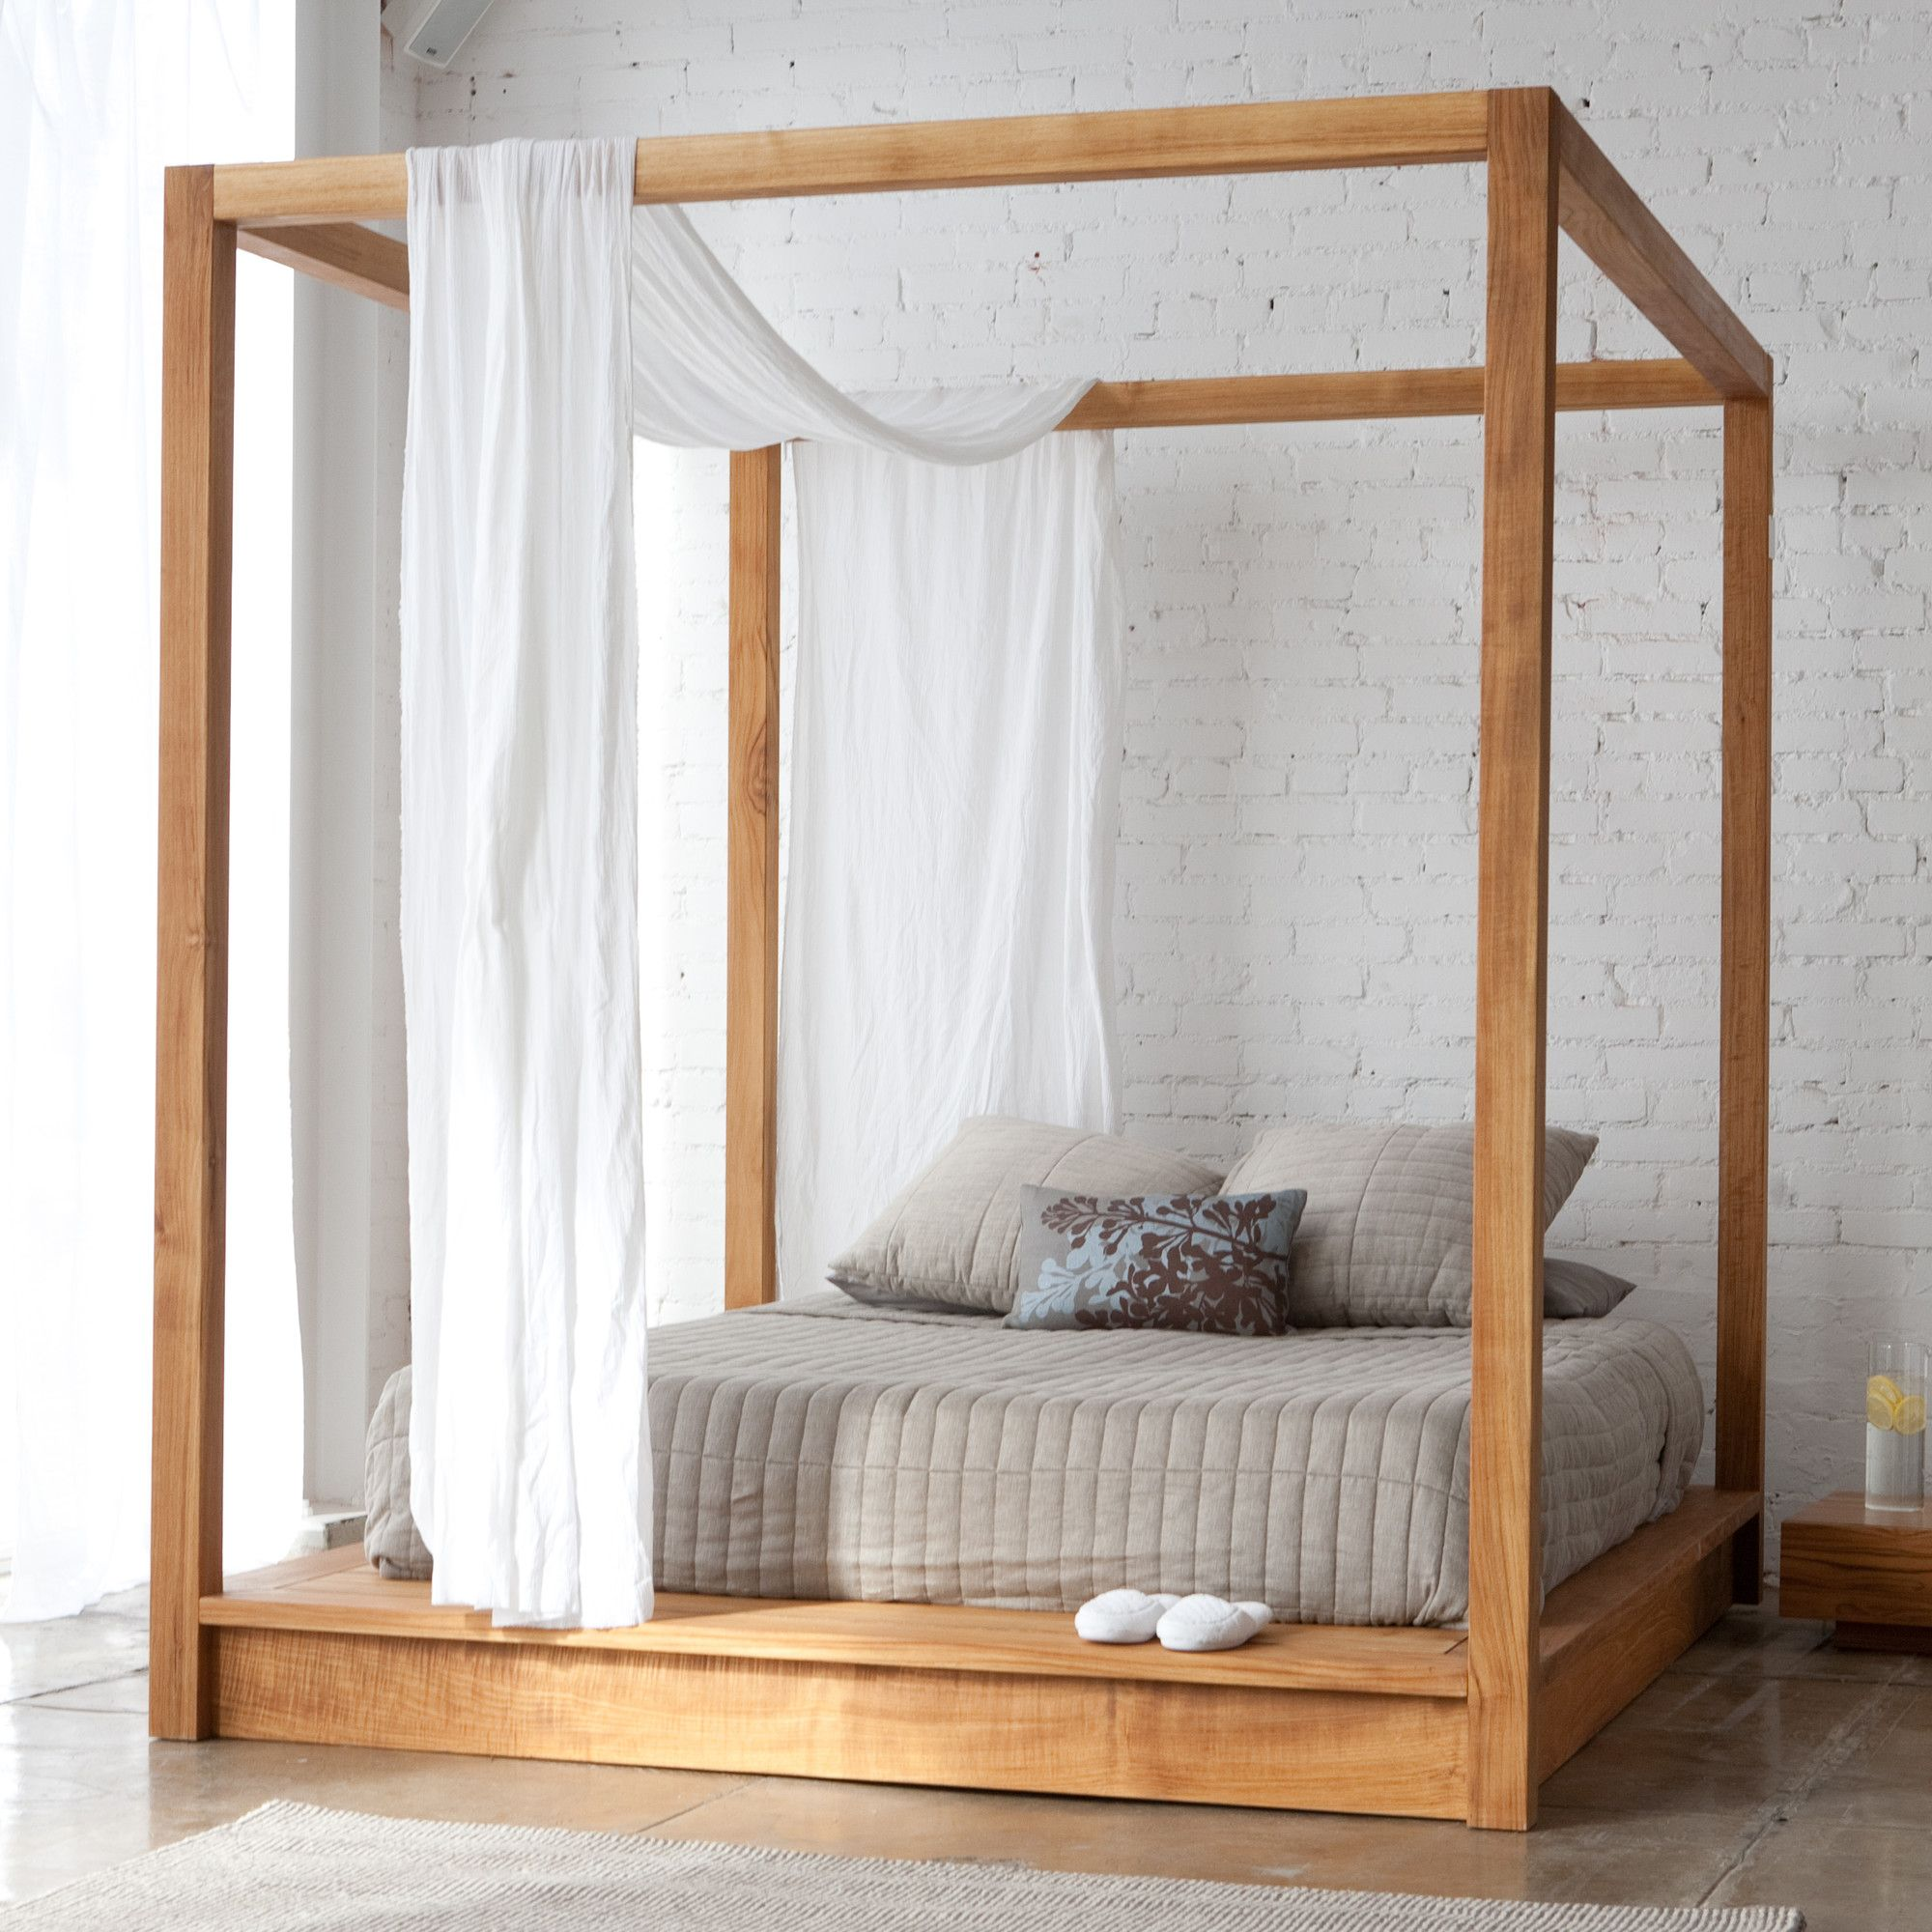 - Canopy Bed For Sky's Room Modern Canopy Bed, Canopy Bed Frame